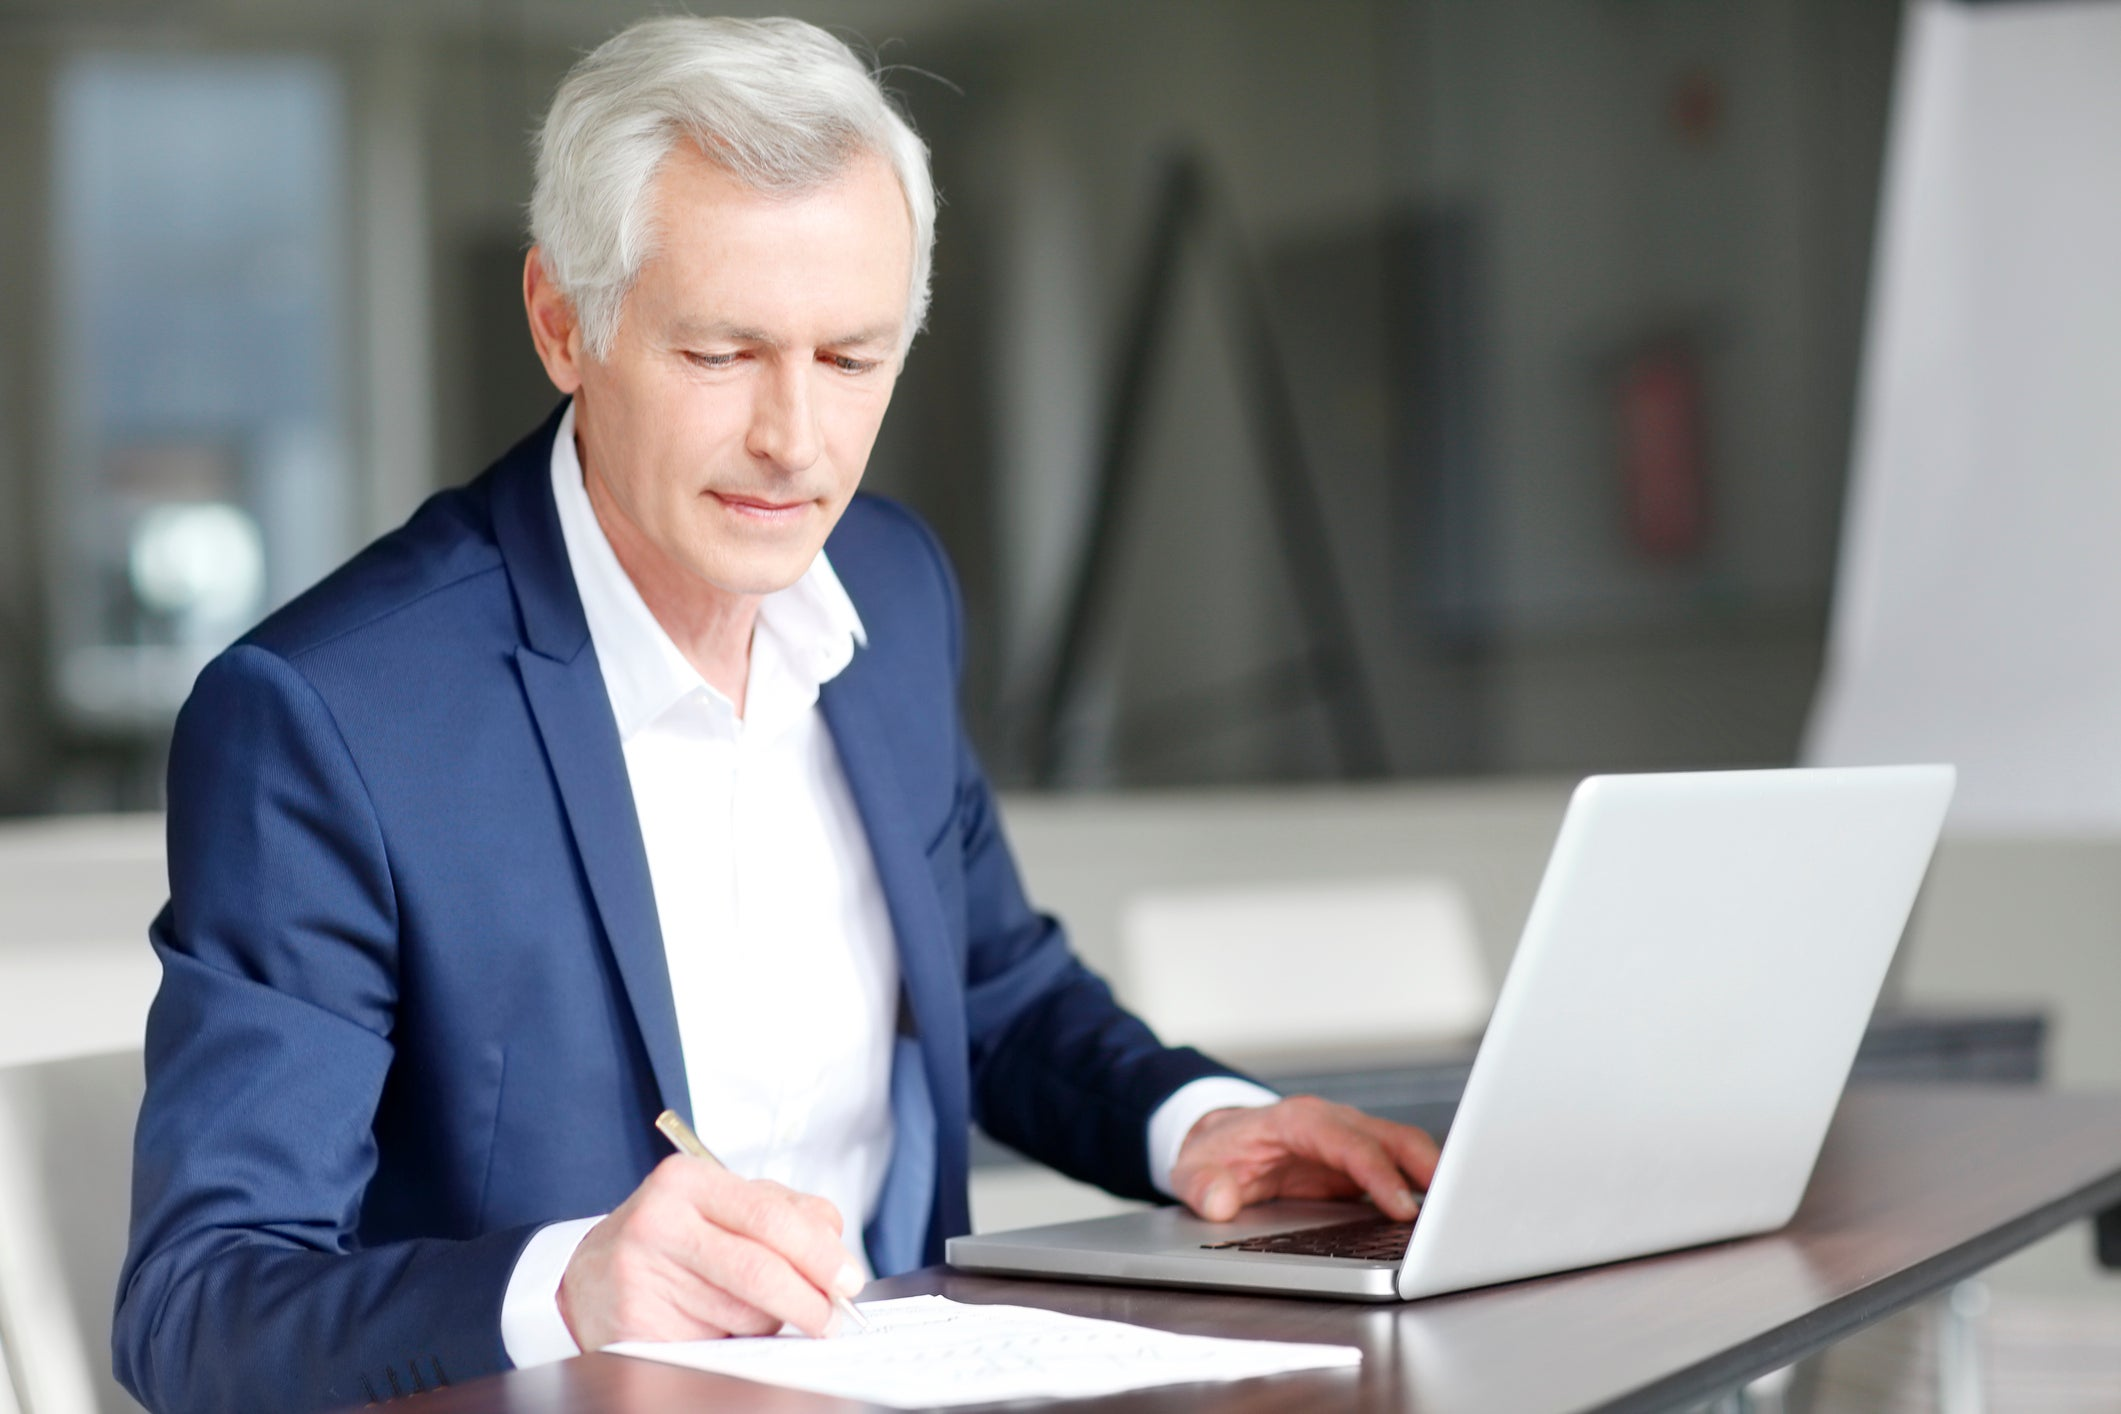 3 Things to Know If You're Planning to Work in Your 70s | The Motley Fool